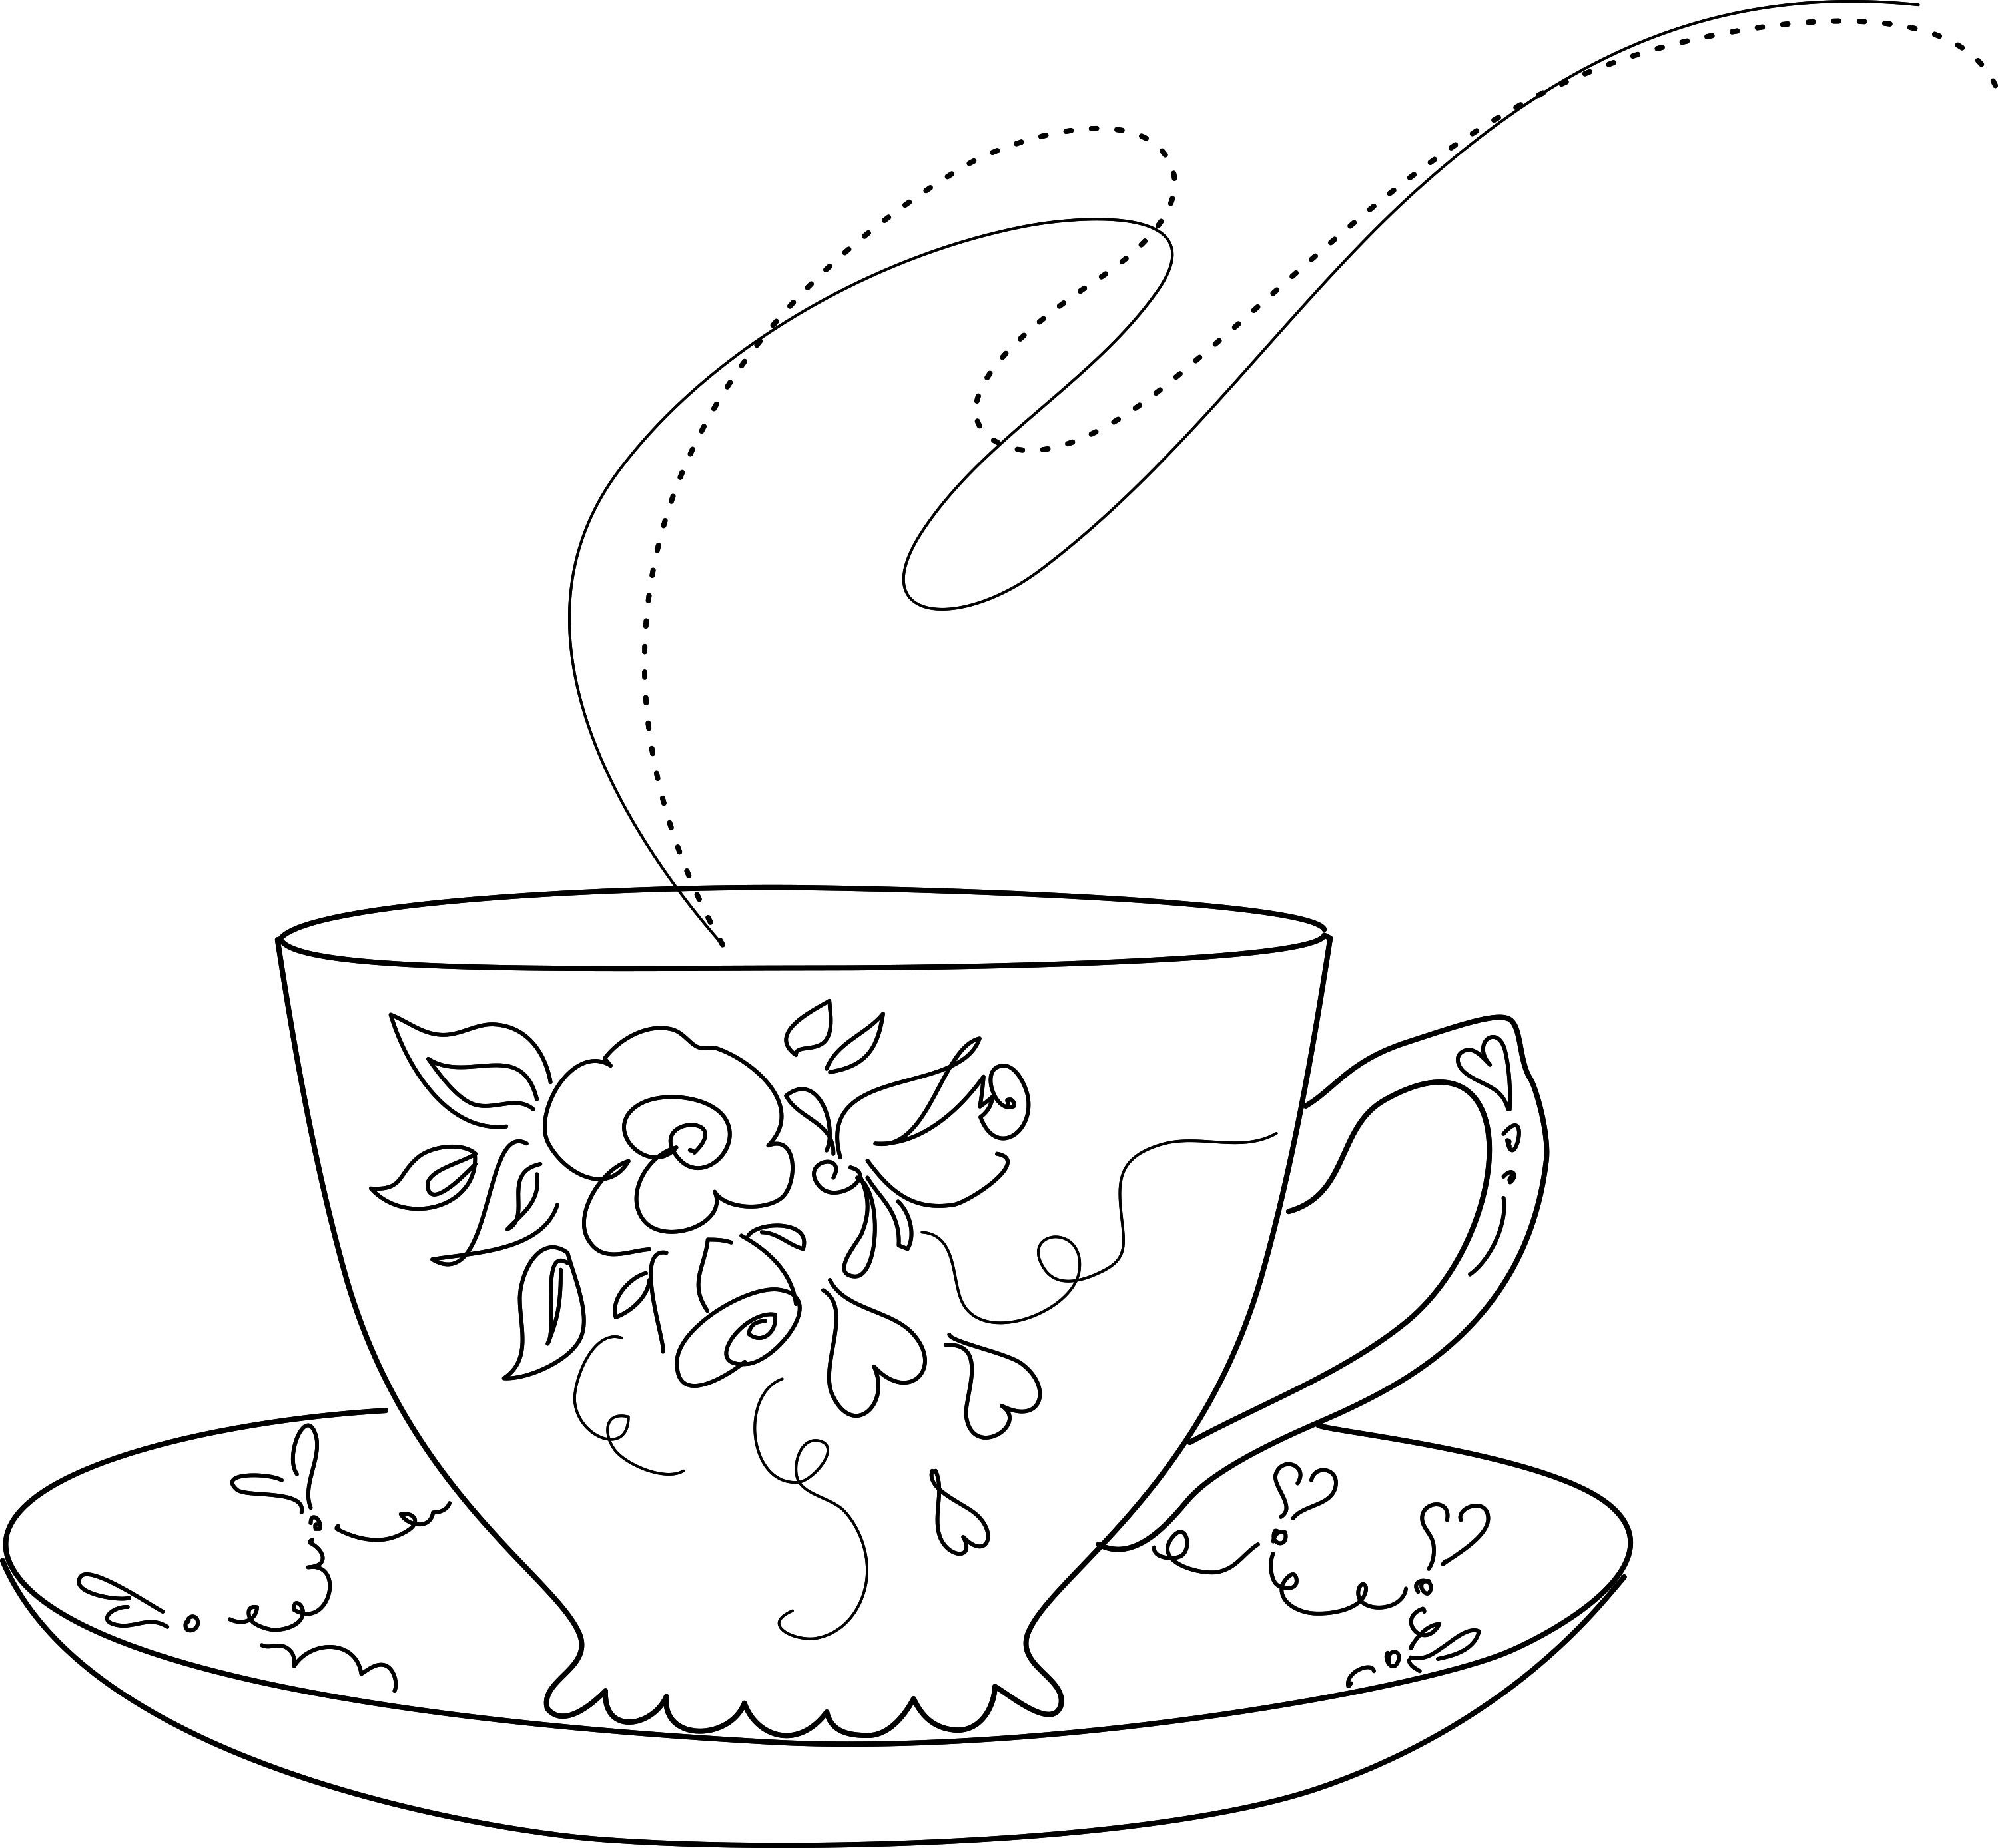 Pin On Coloring Sheets Printables Exercises